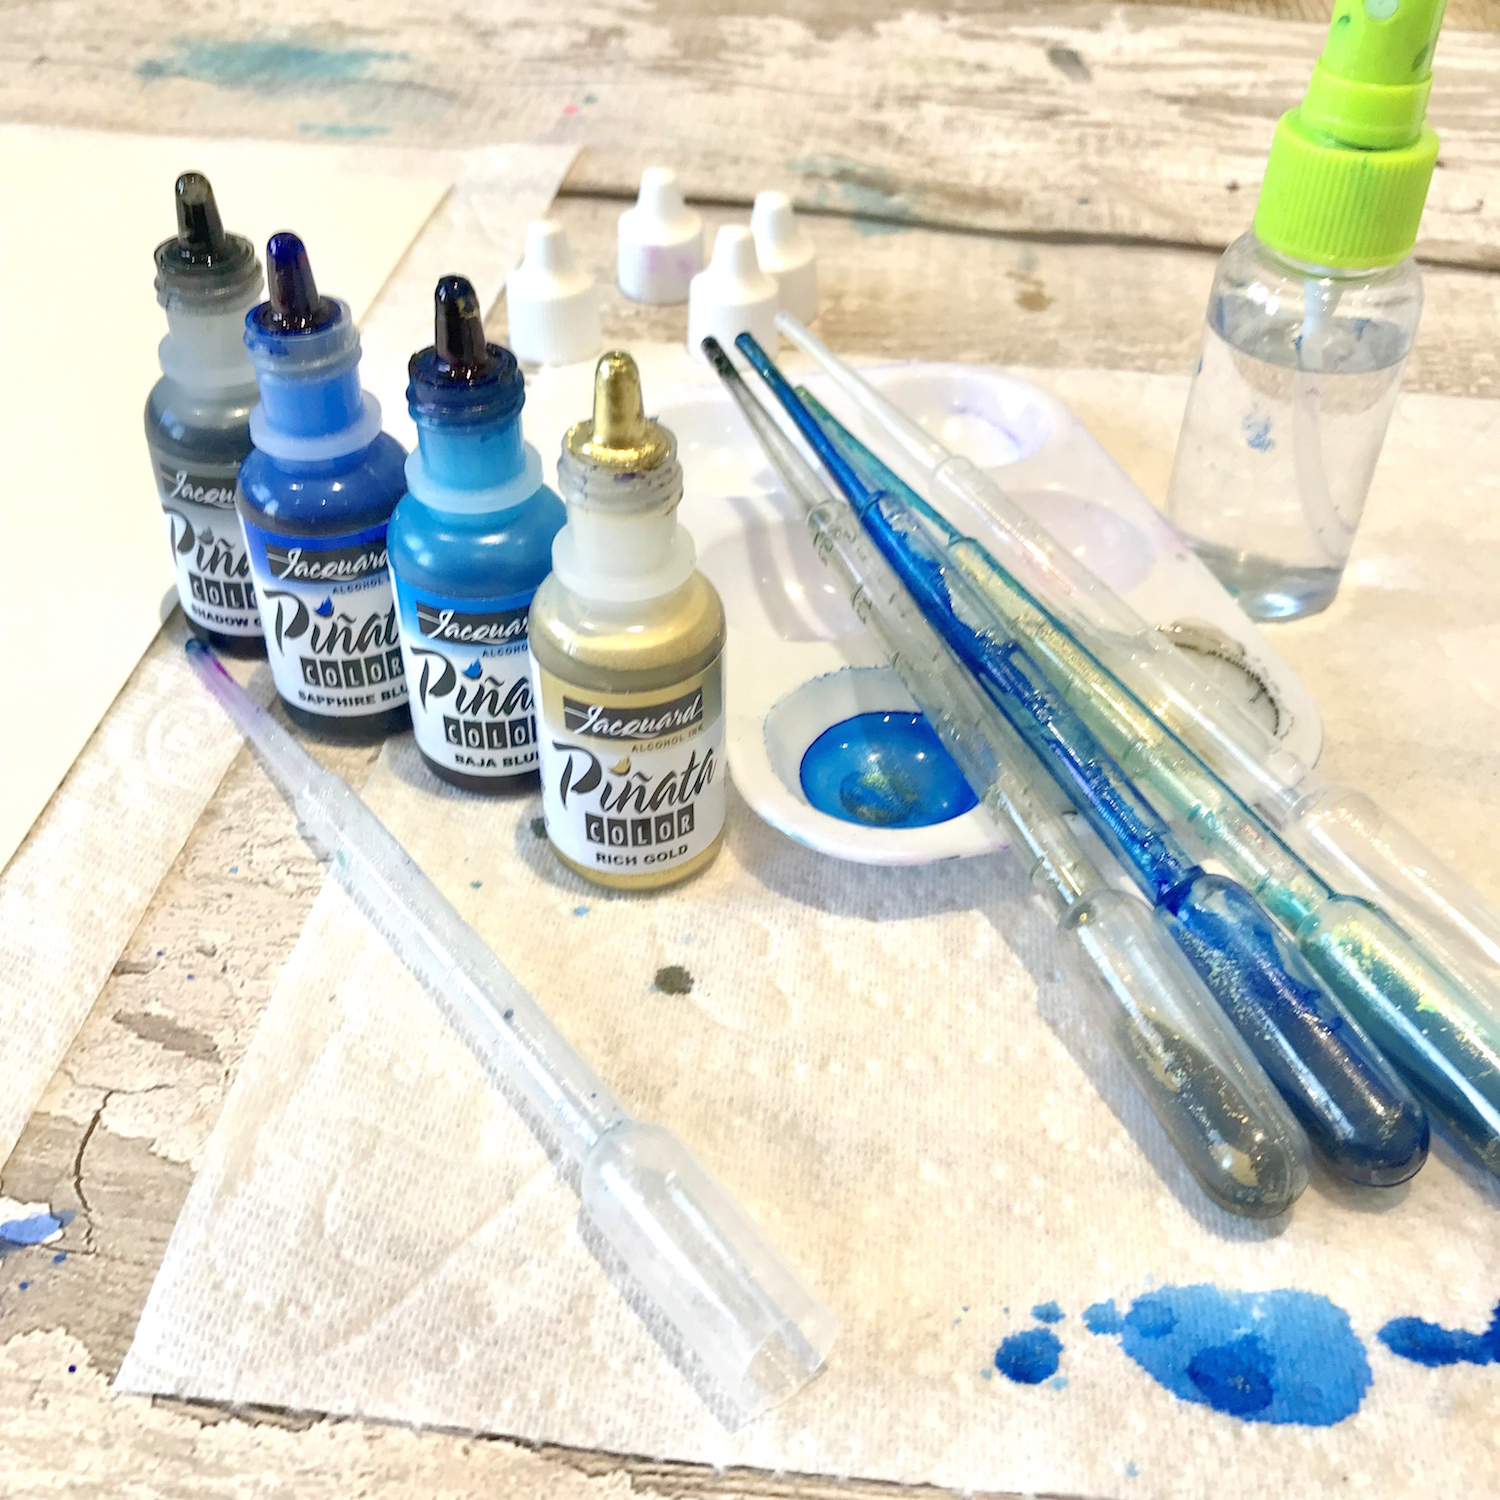 Review of Legion Yupo Paper and Jacquard Piñata Alcohol Inks